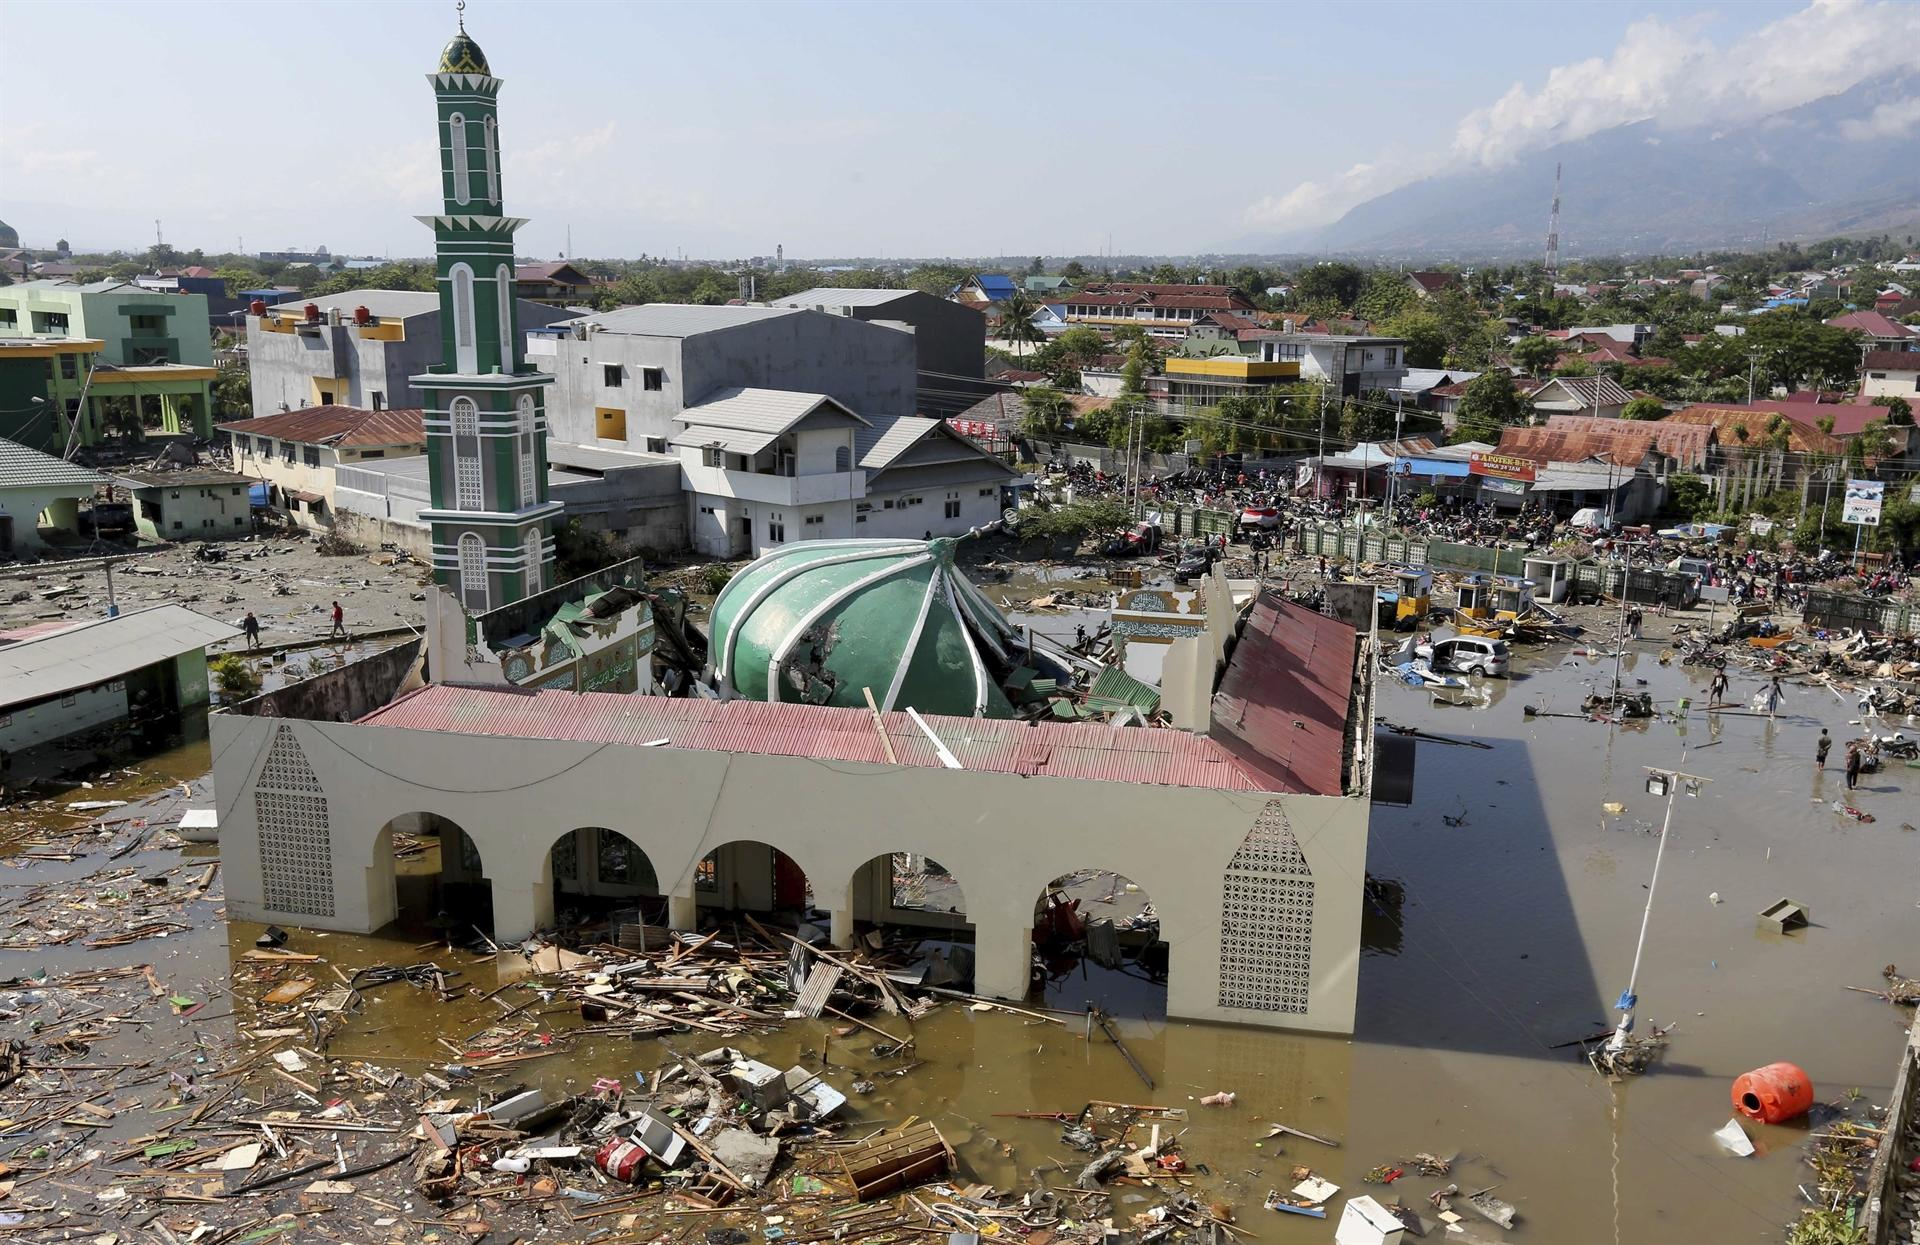 MJC sends our condolences to Indonesians affected by the Tsunami news - Indonesian Earthquake - News